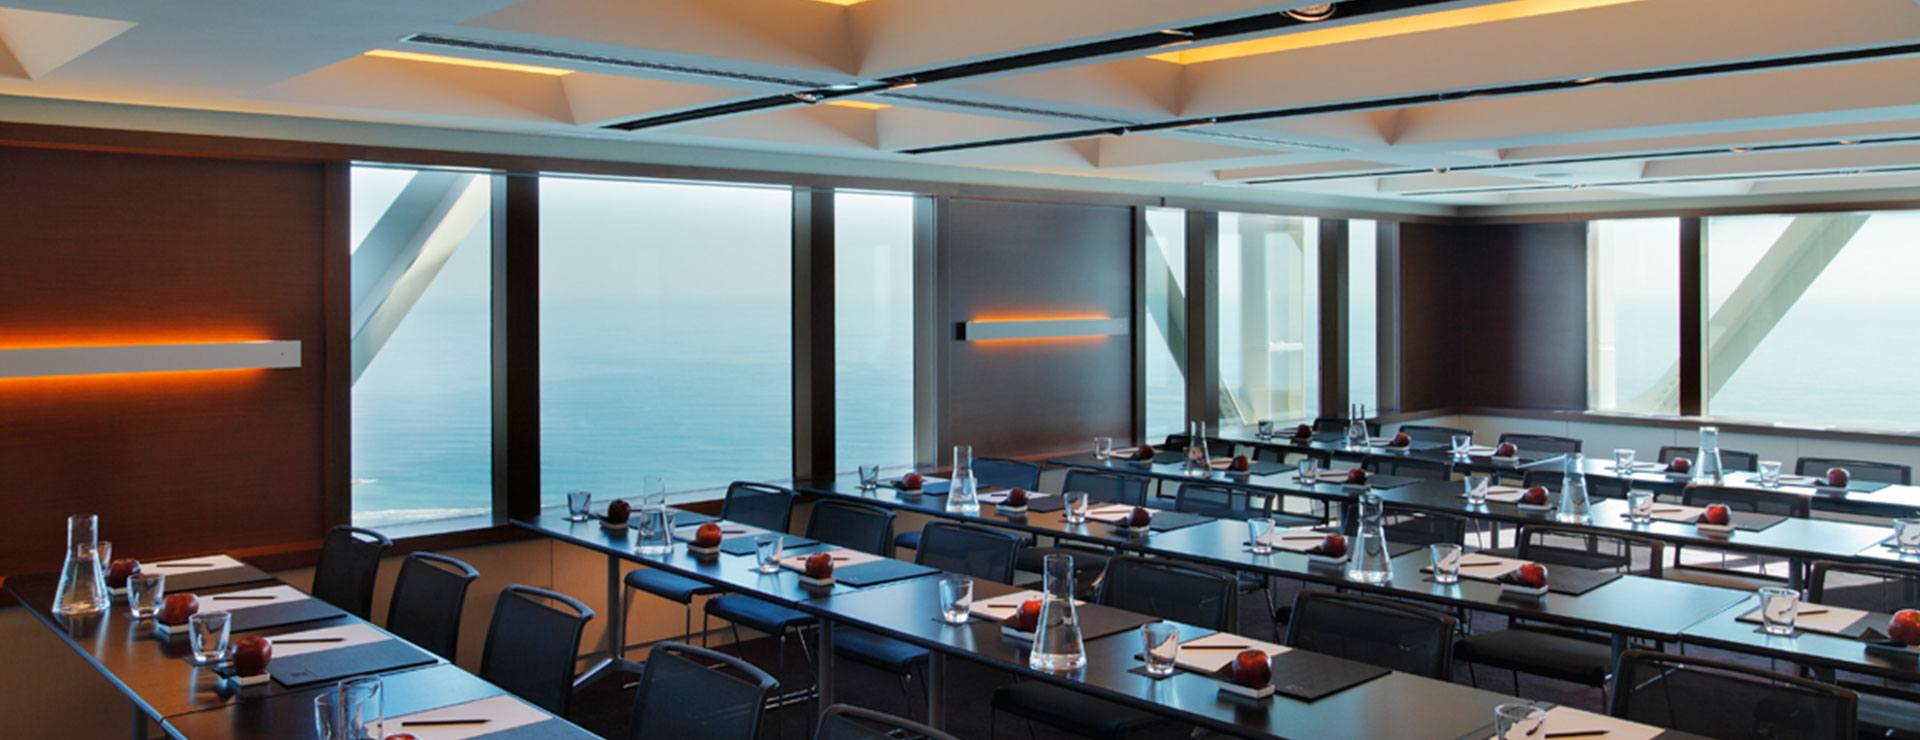 Meetings with Mediterranean views